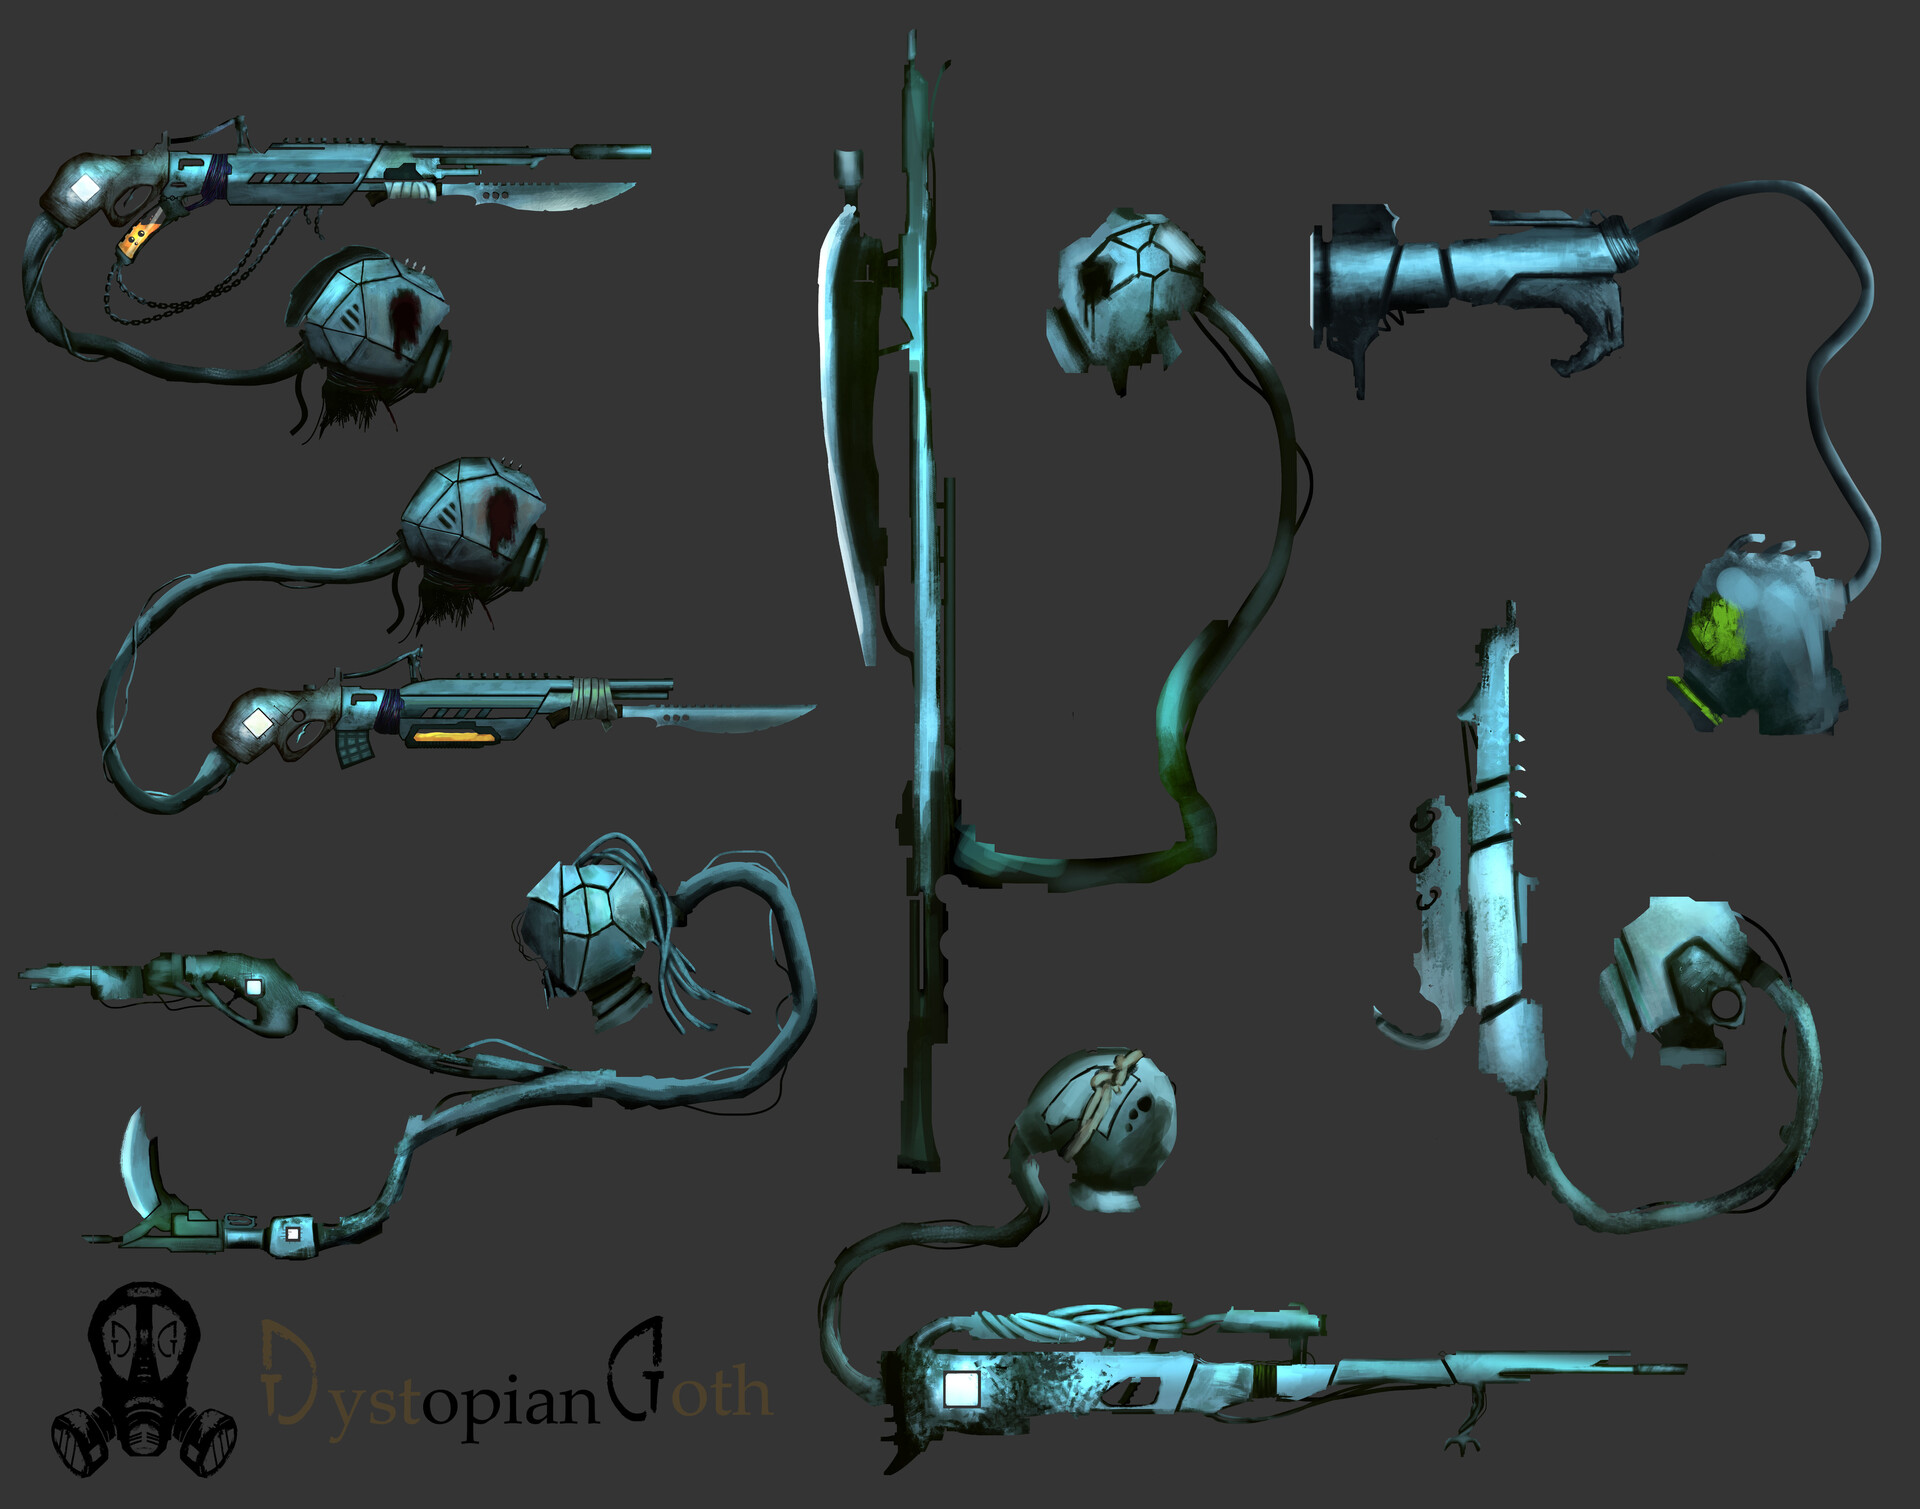 Iterative weapon designs created for Dystopian Goth | Weapons Augmented